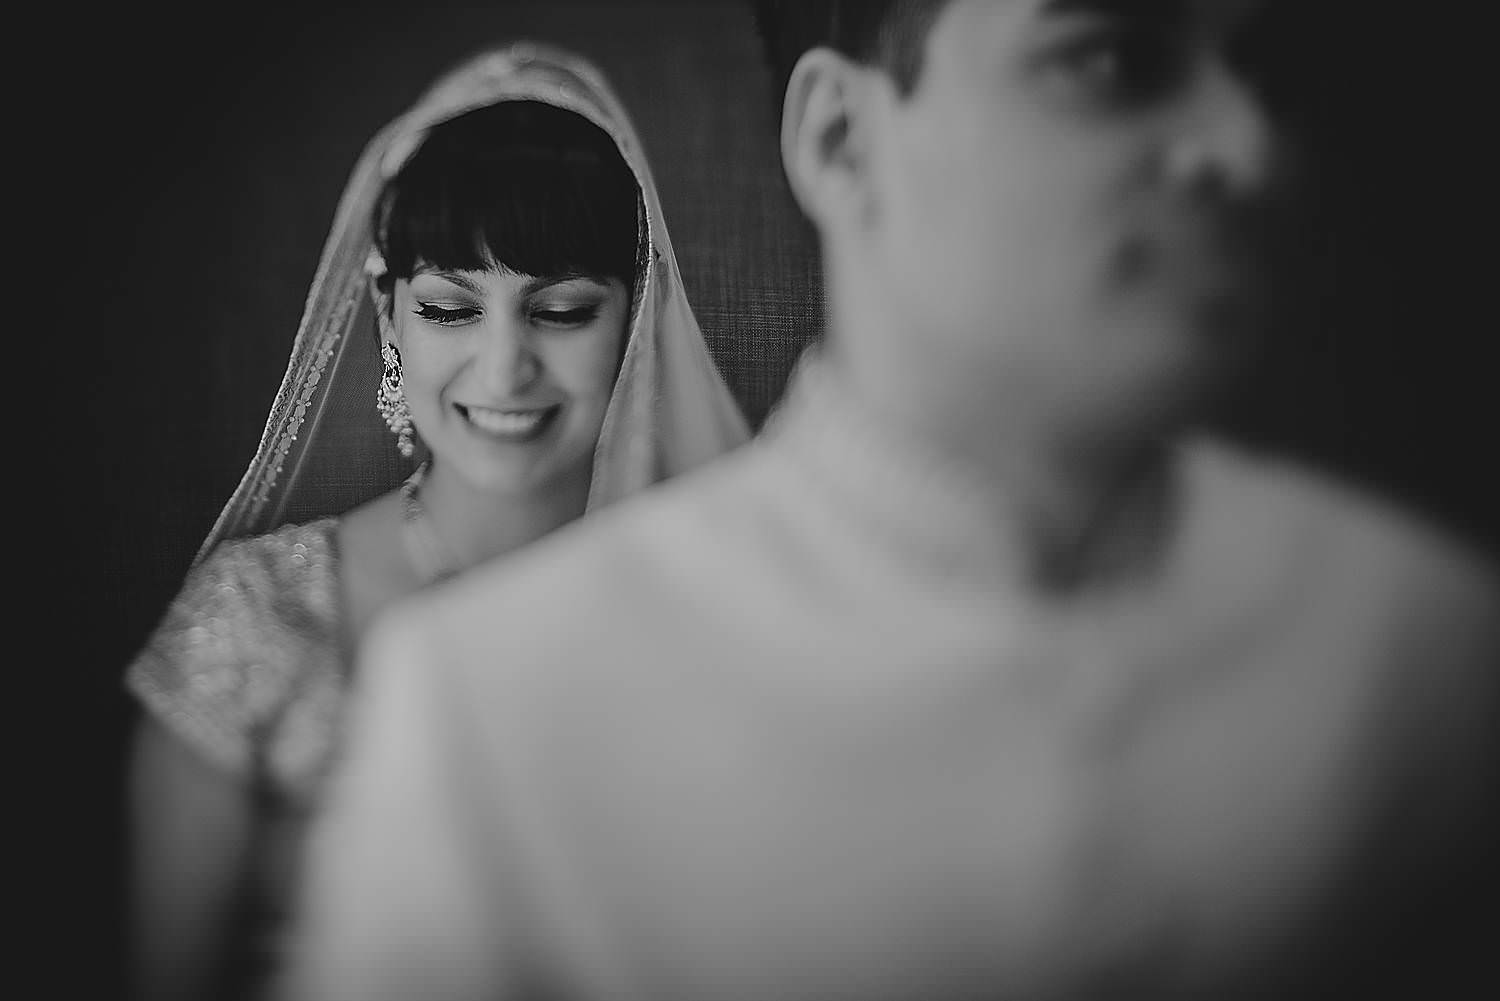 Ritu-Conan-Nikhil-Shastri-Wedding-Photography-43.jpg